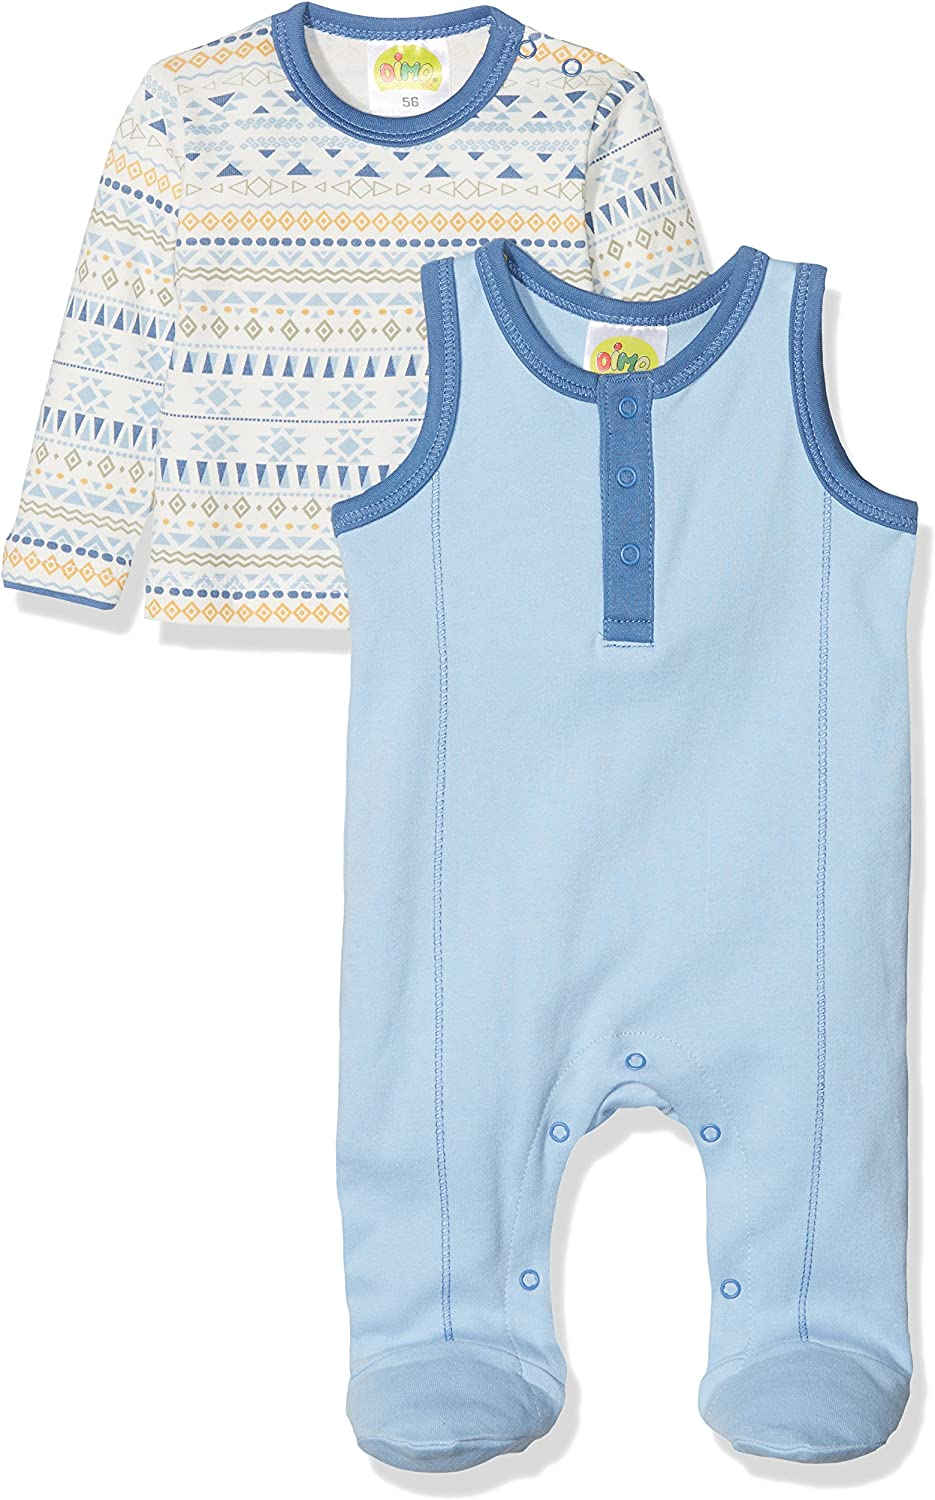 DIMO-TEX Baby-Jungen Strampler Set Indian Summer